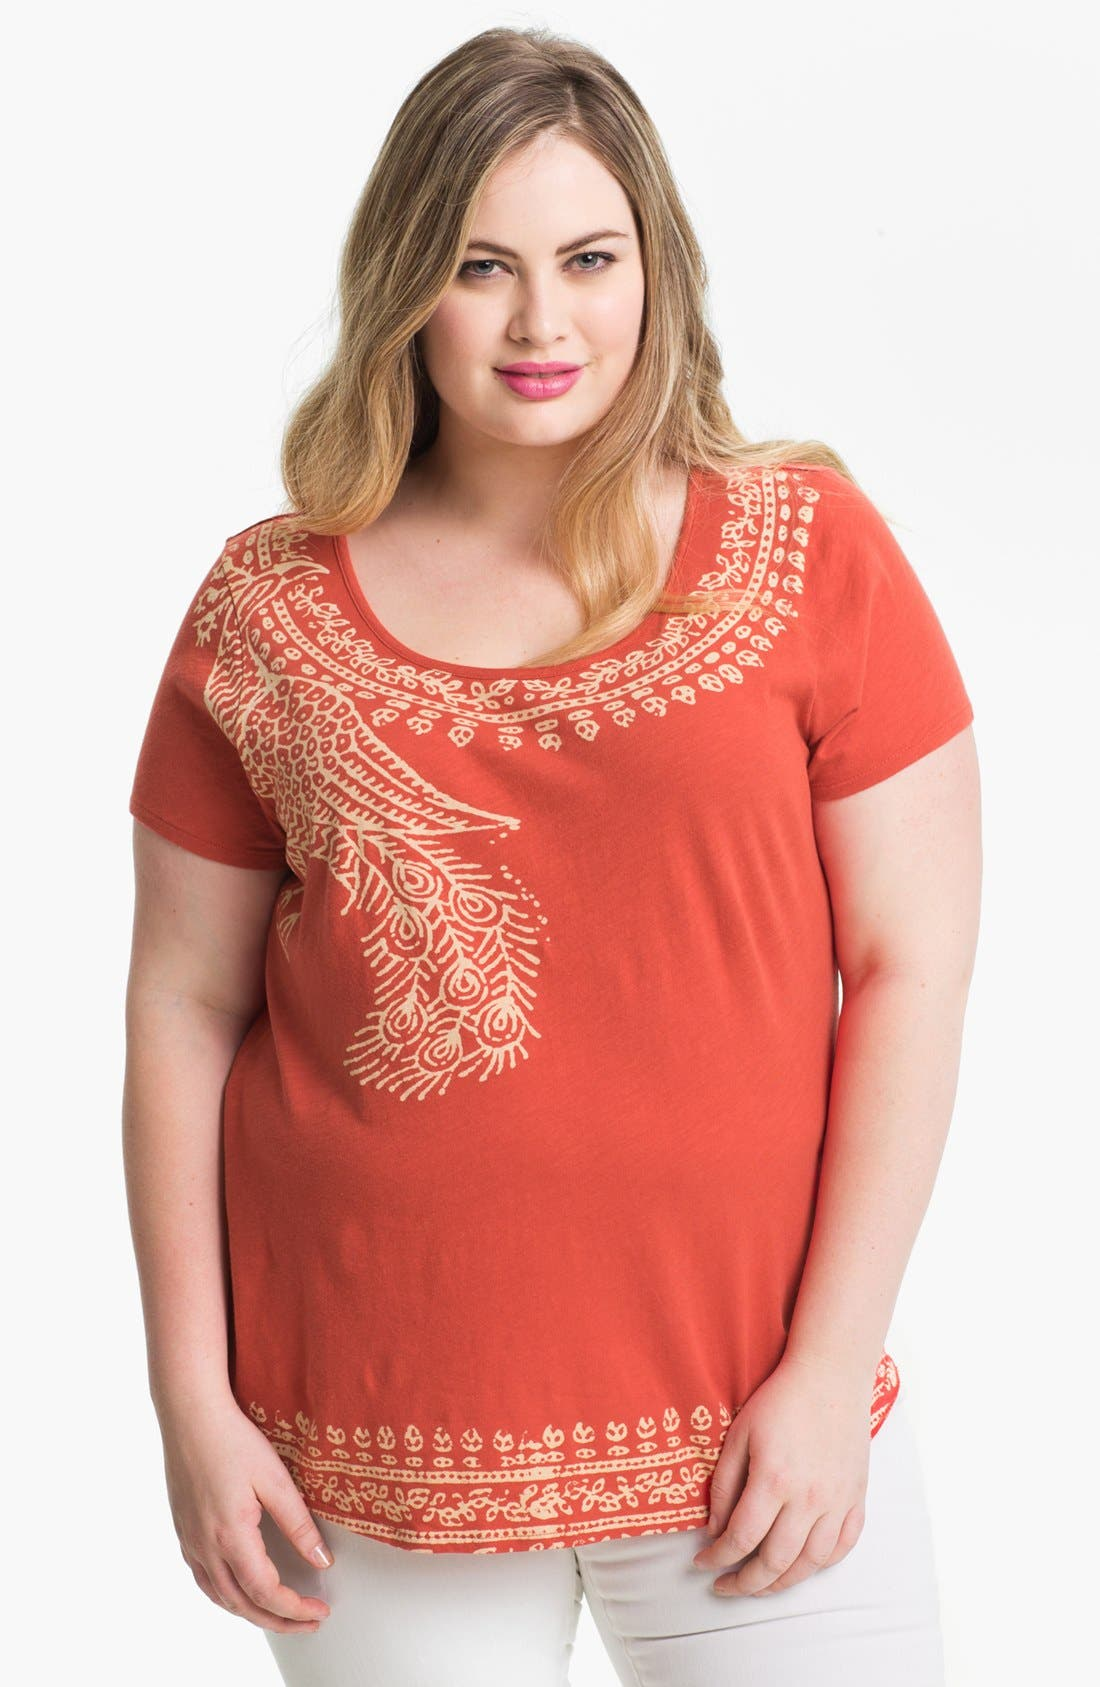 Alternate Image 1 Selected - Lucky Brand Print Cotton Tee (Plus Size)